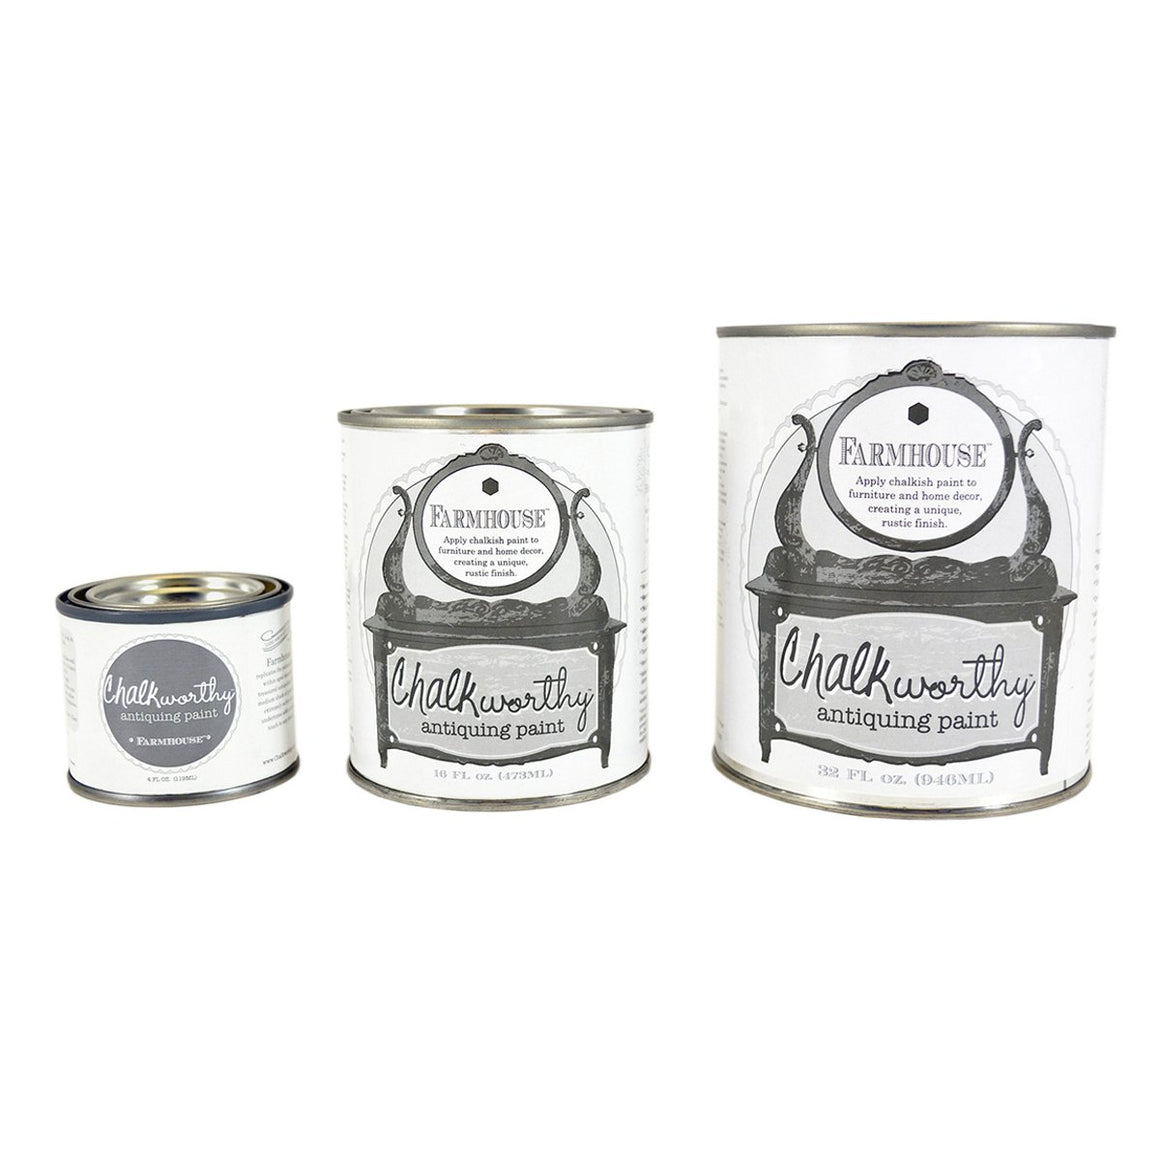 Chalkworthy FarmHouse Antiquing Paint